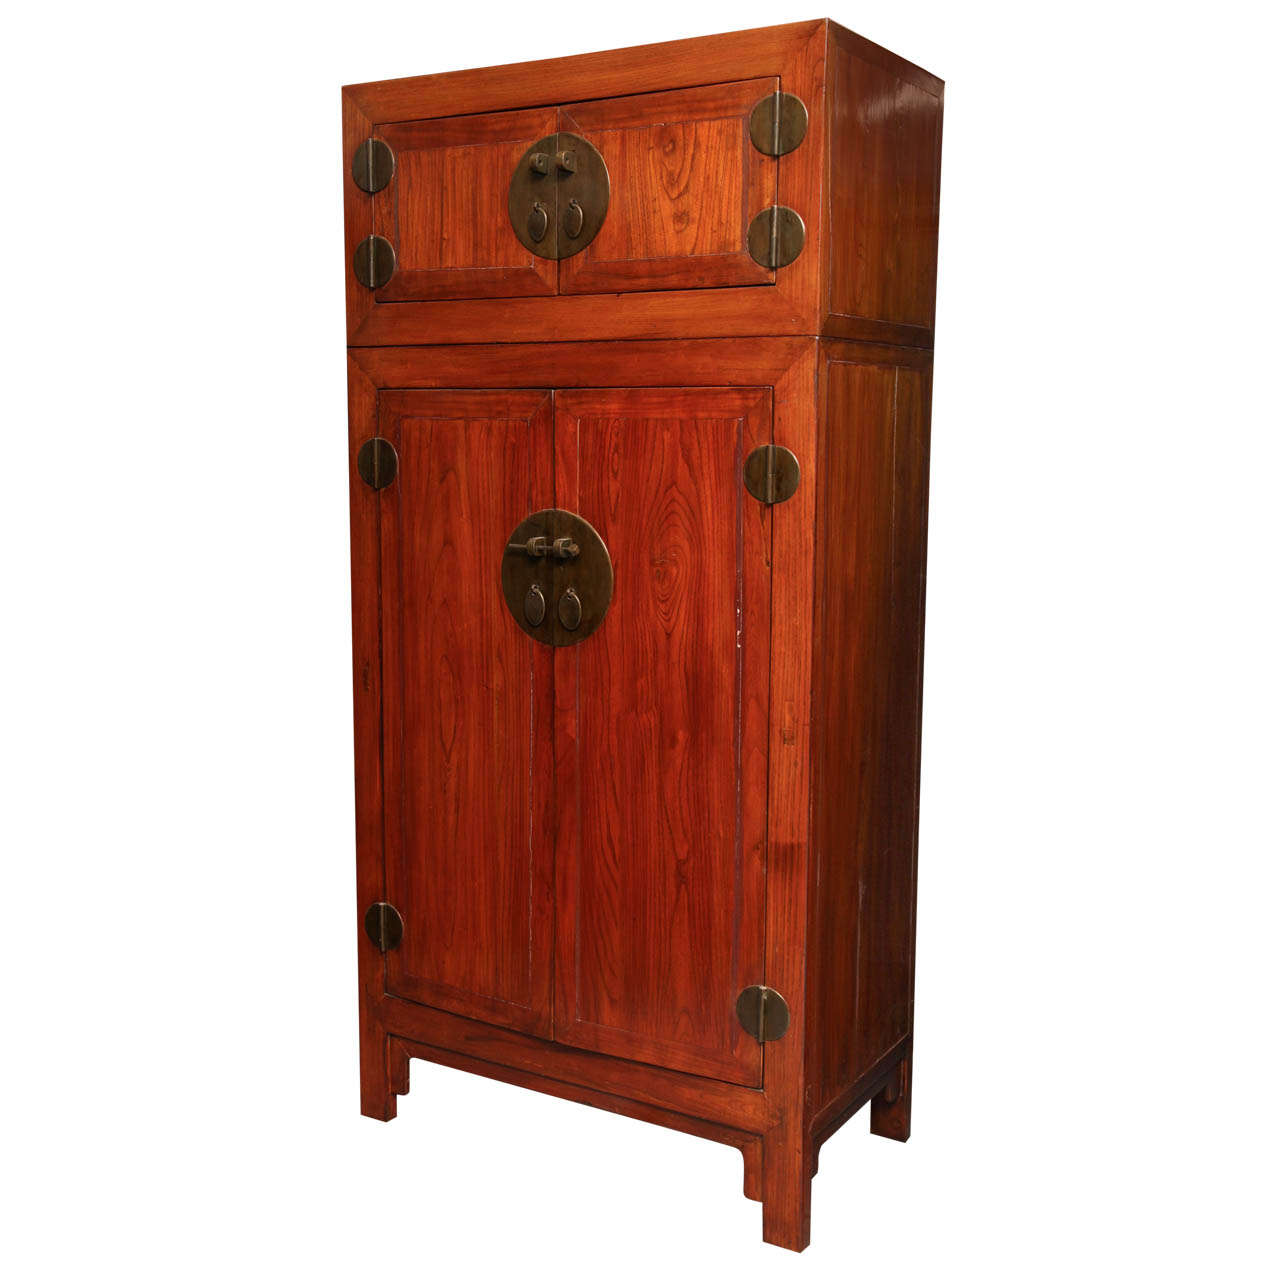 Antique Compound Cabinet with Pear Brass Hardware from China, 19th Century 1 - Antique Compound Cabinet With Pear Brass Hardware From China, 19th